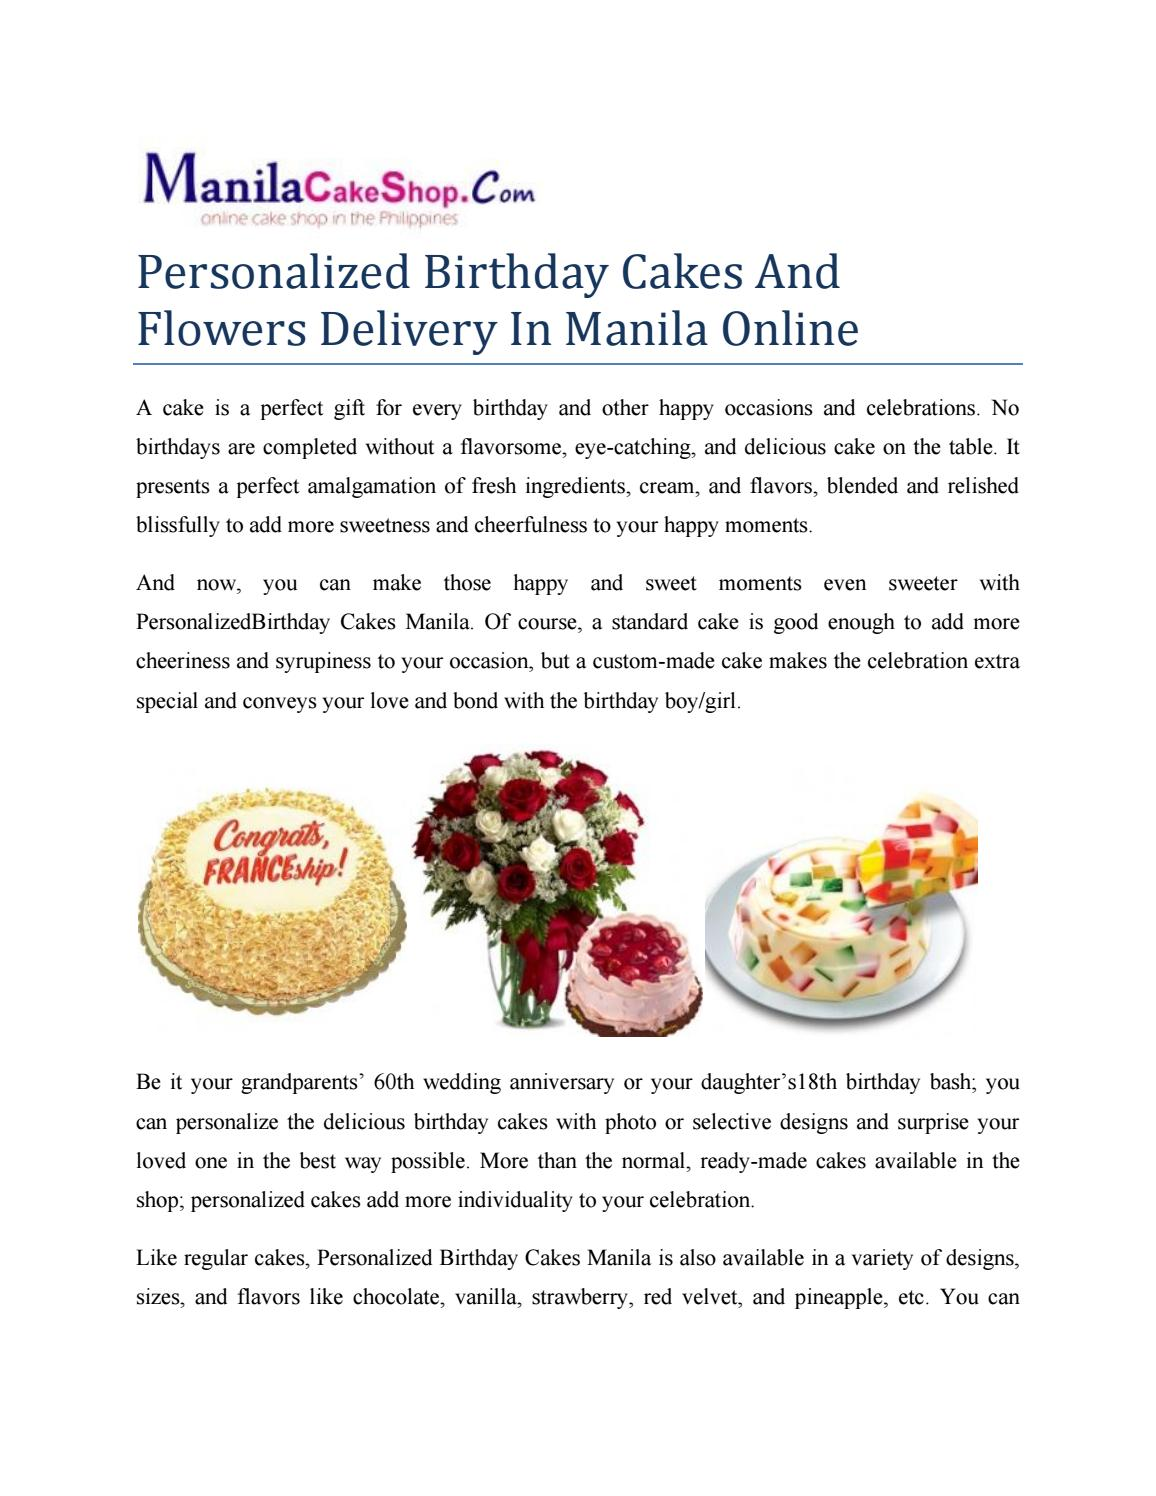 Tremendous Personalized Birthday Cakes And Flowers Delivery In Manila Online Personalised Birthday Cards Veneteletsinfo